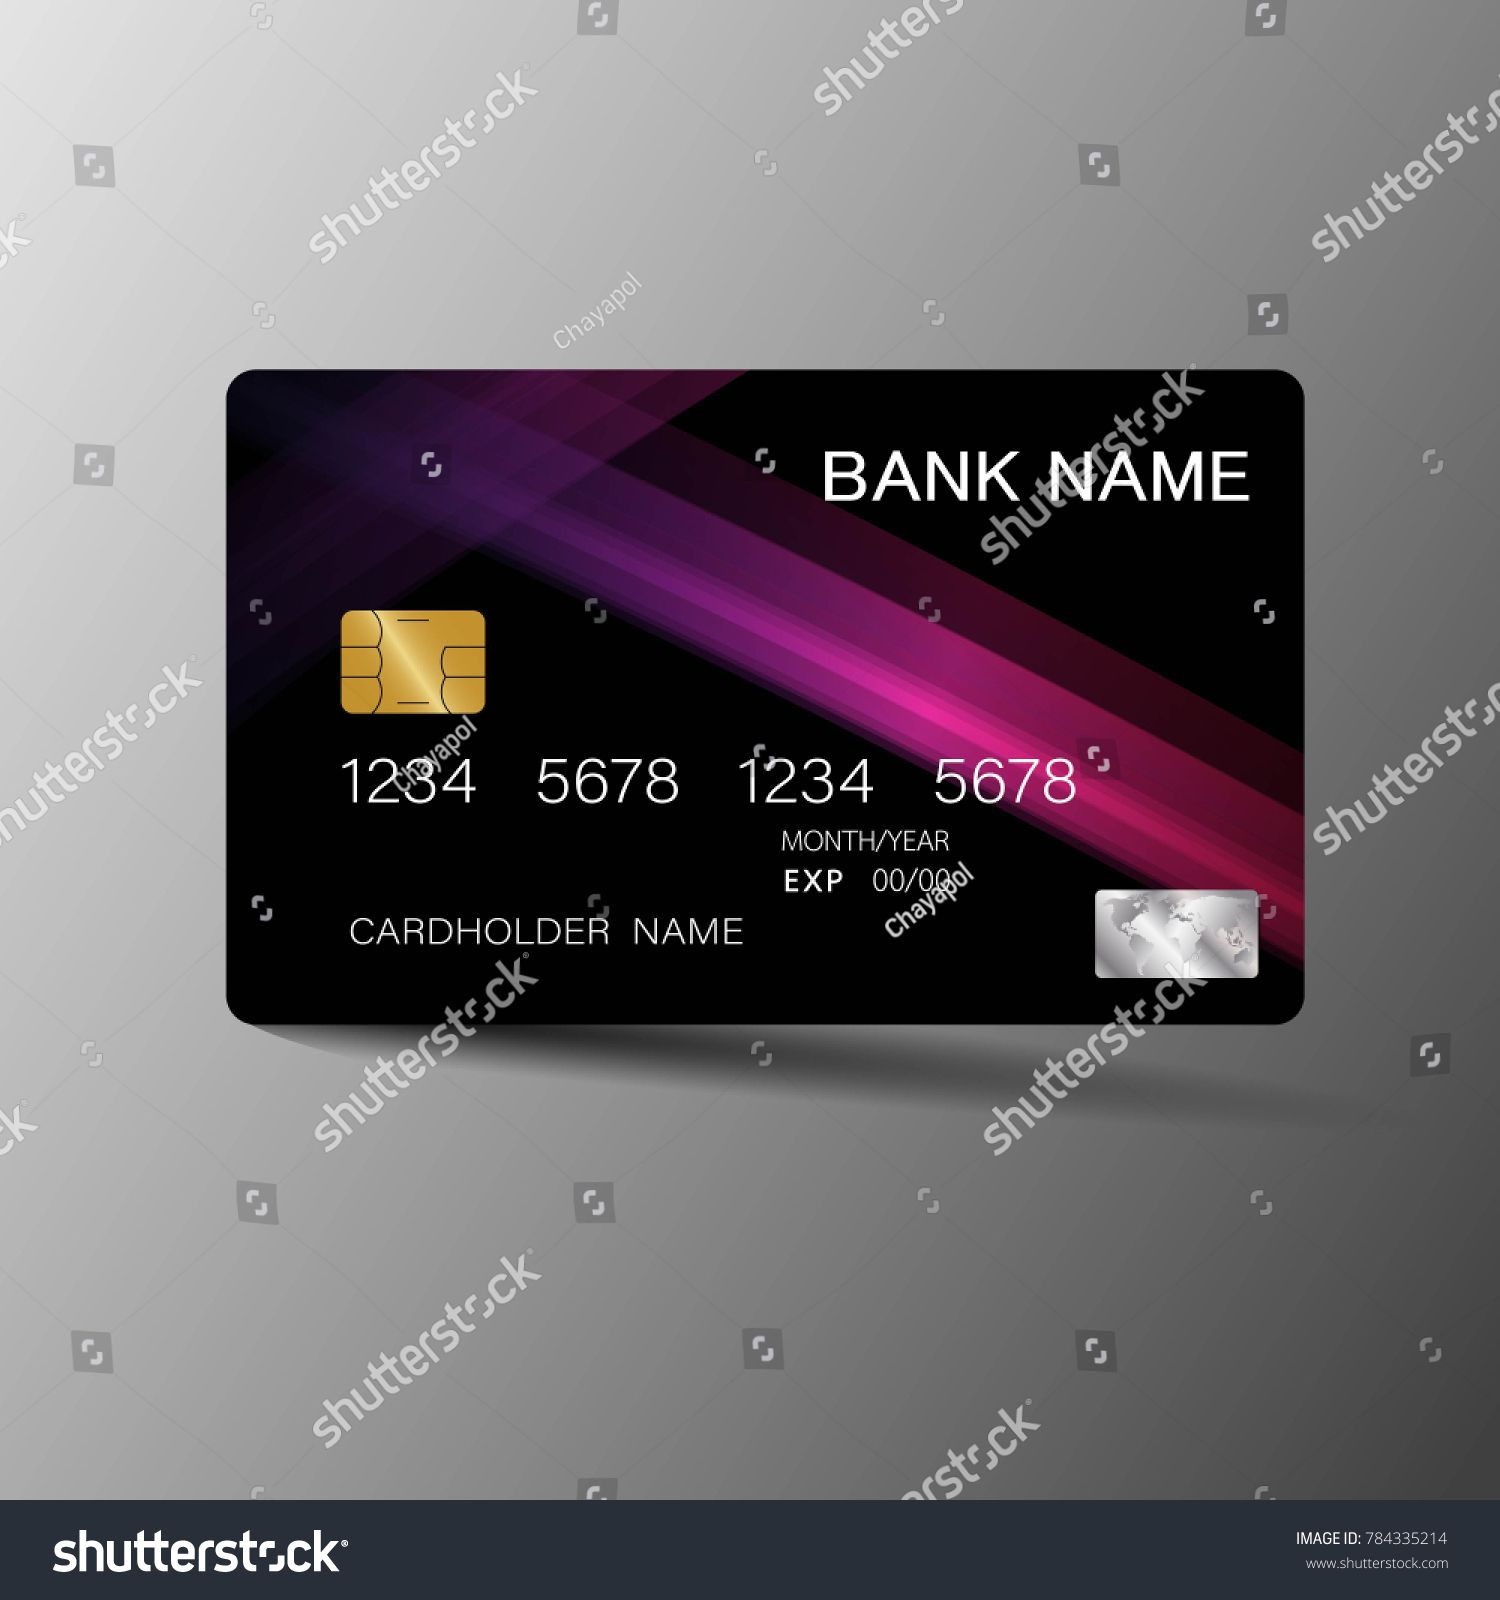 Modern Credit Card Template Design With Inspiration From The